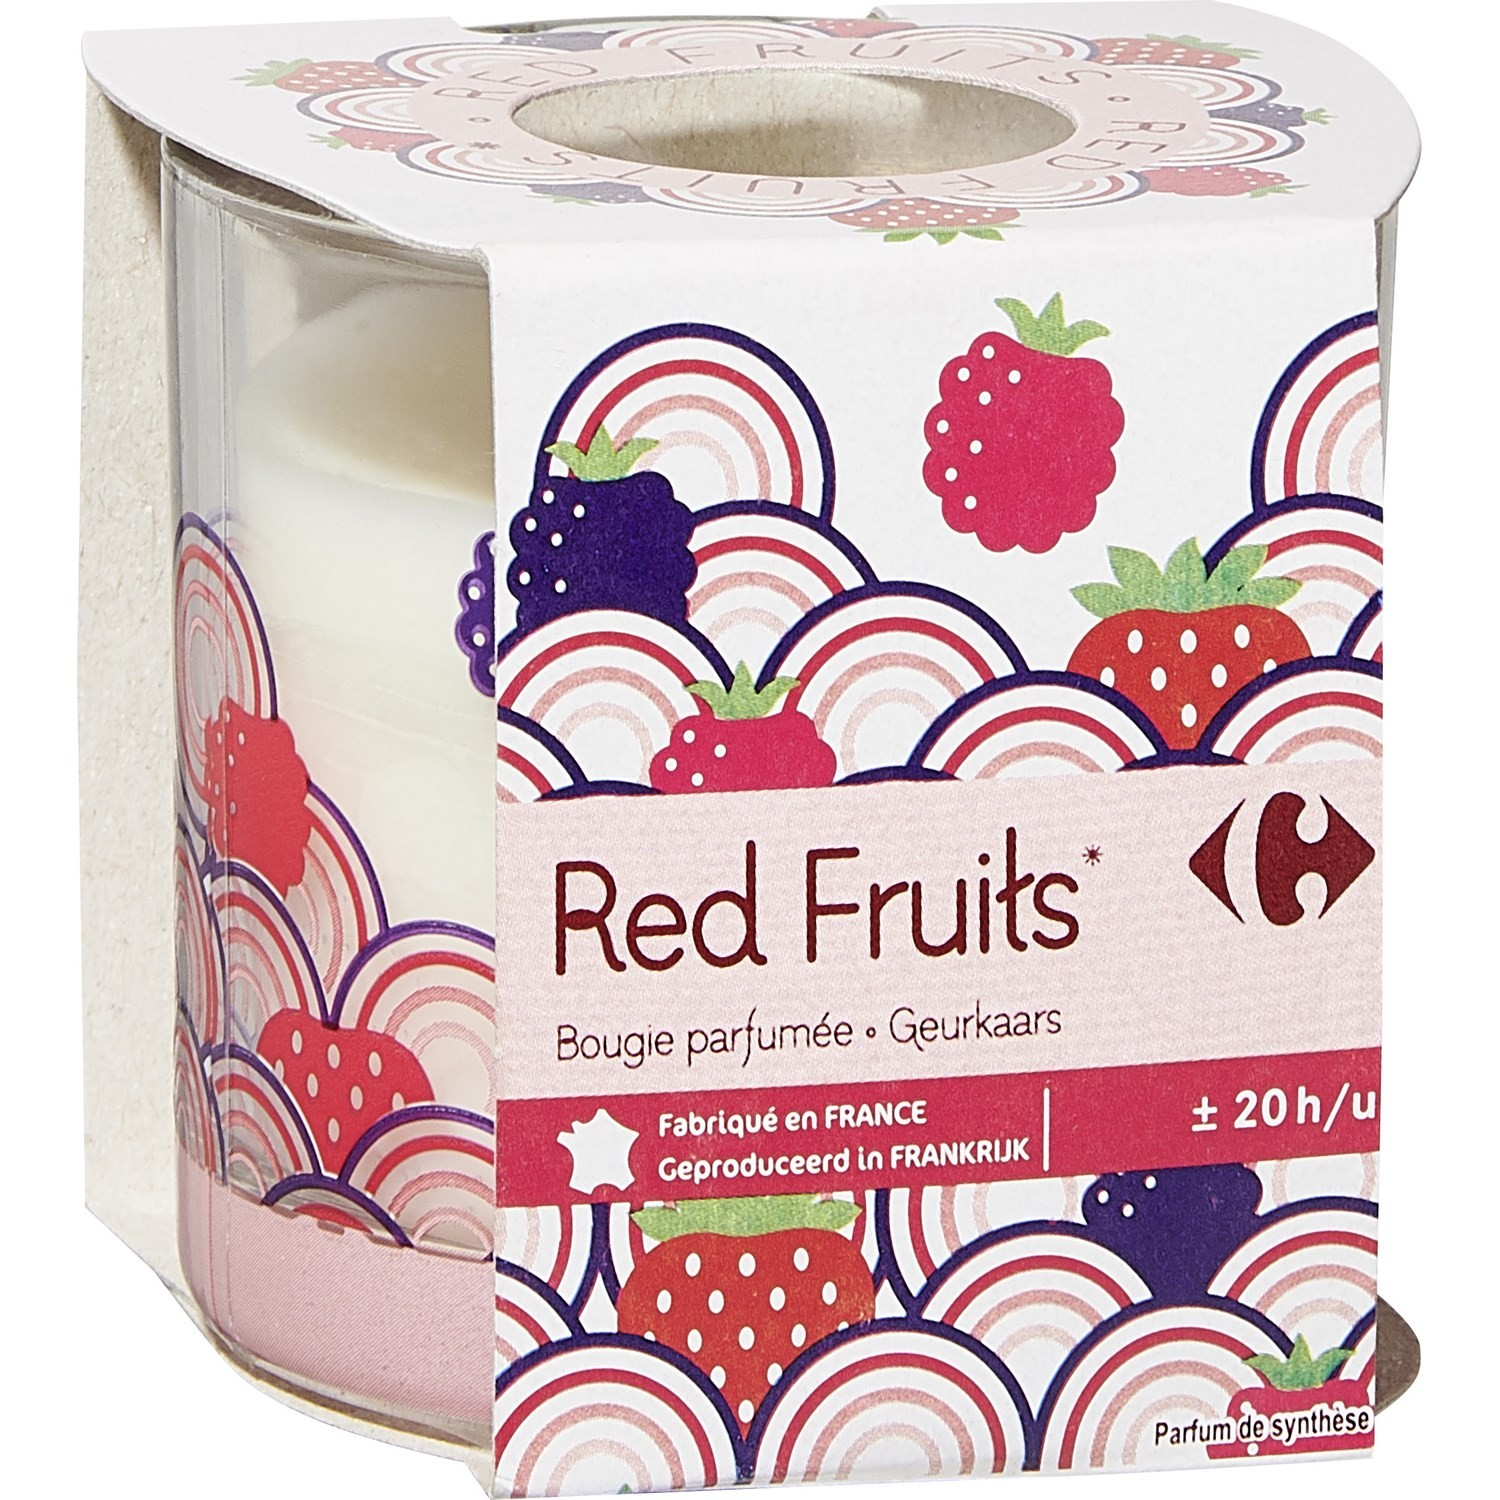 Bougie parfumée Red Fruits CARREFOUR : la bougie de 100g à Prix Carrefour